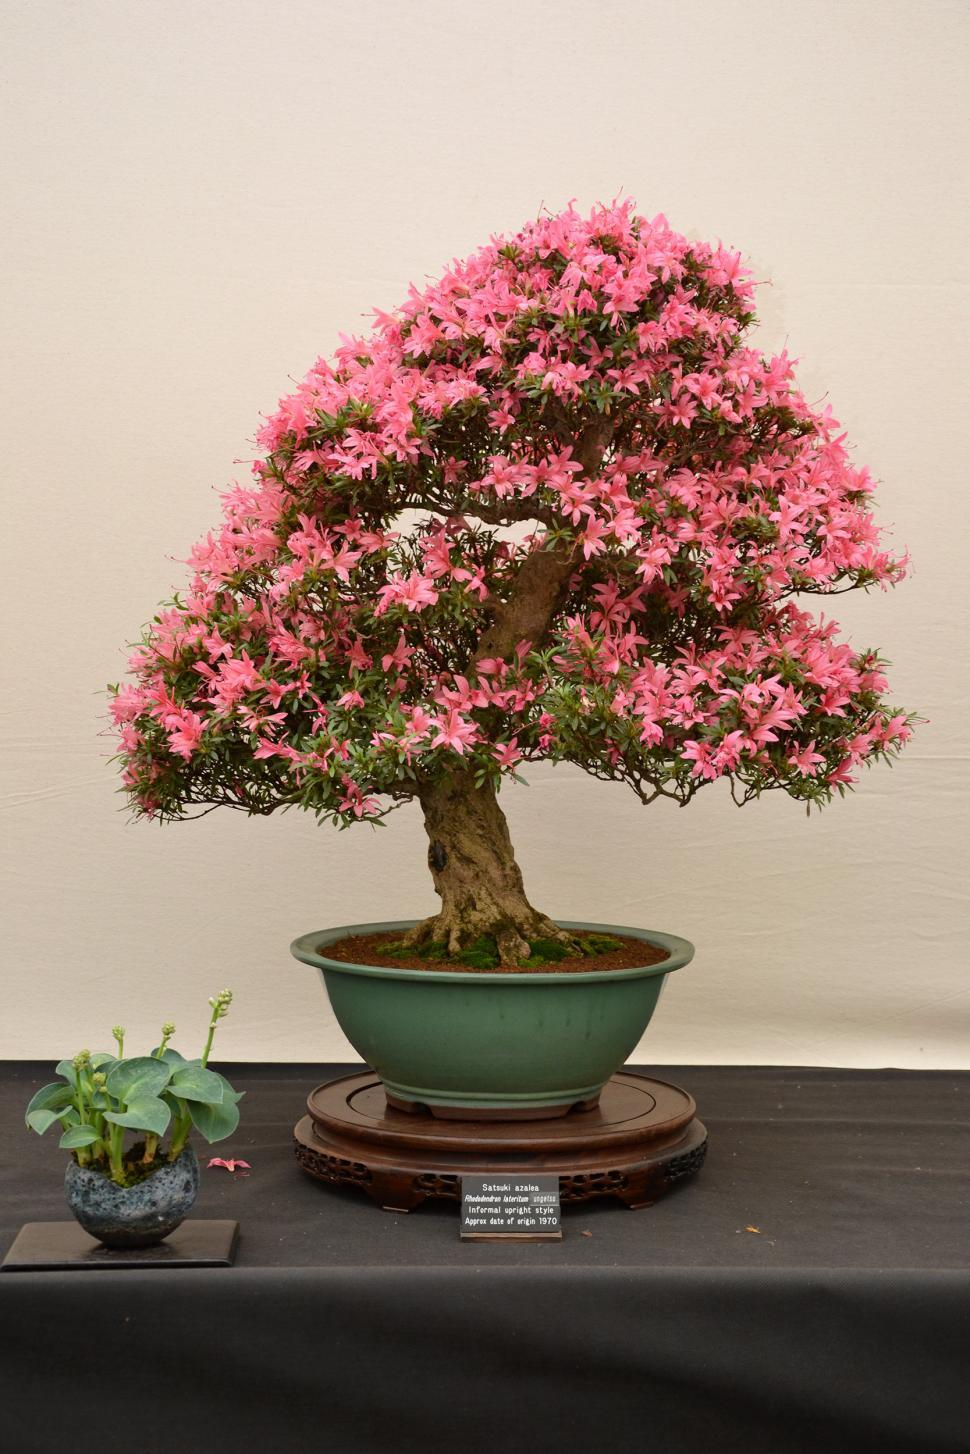 Download Free Stock Photo of Satsuki azalea bonsai